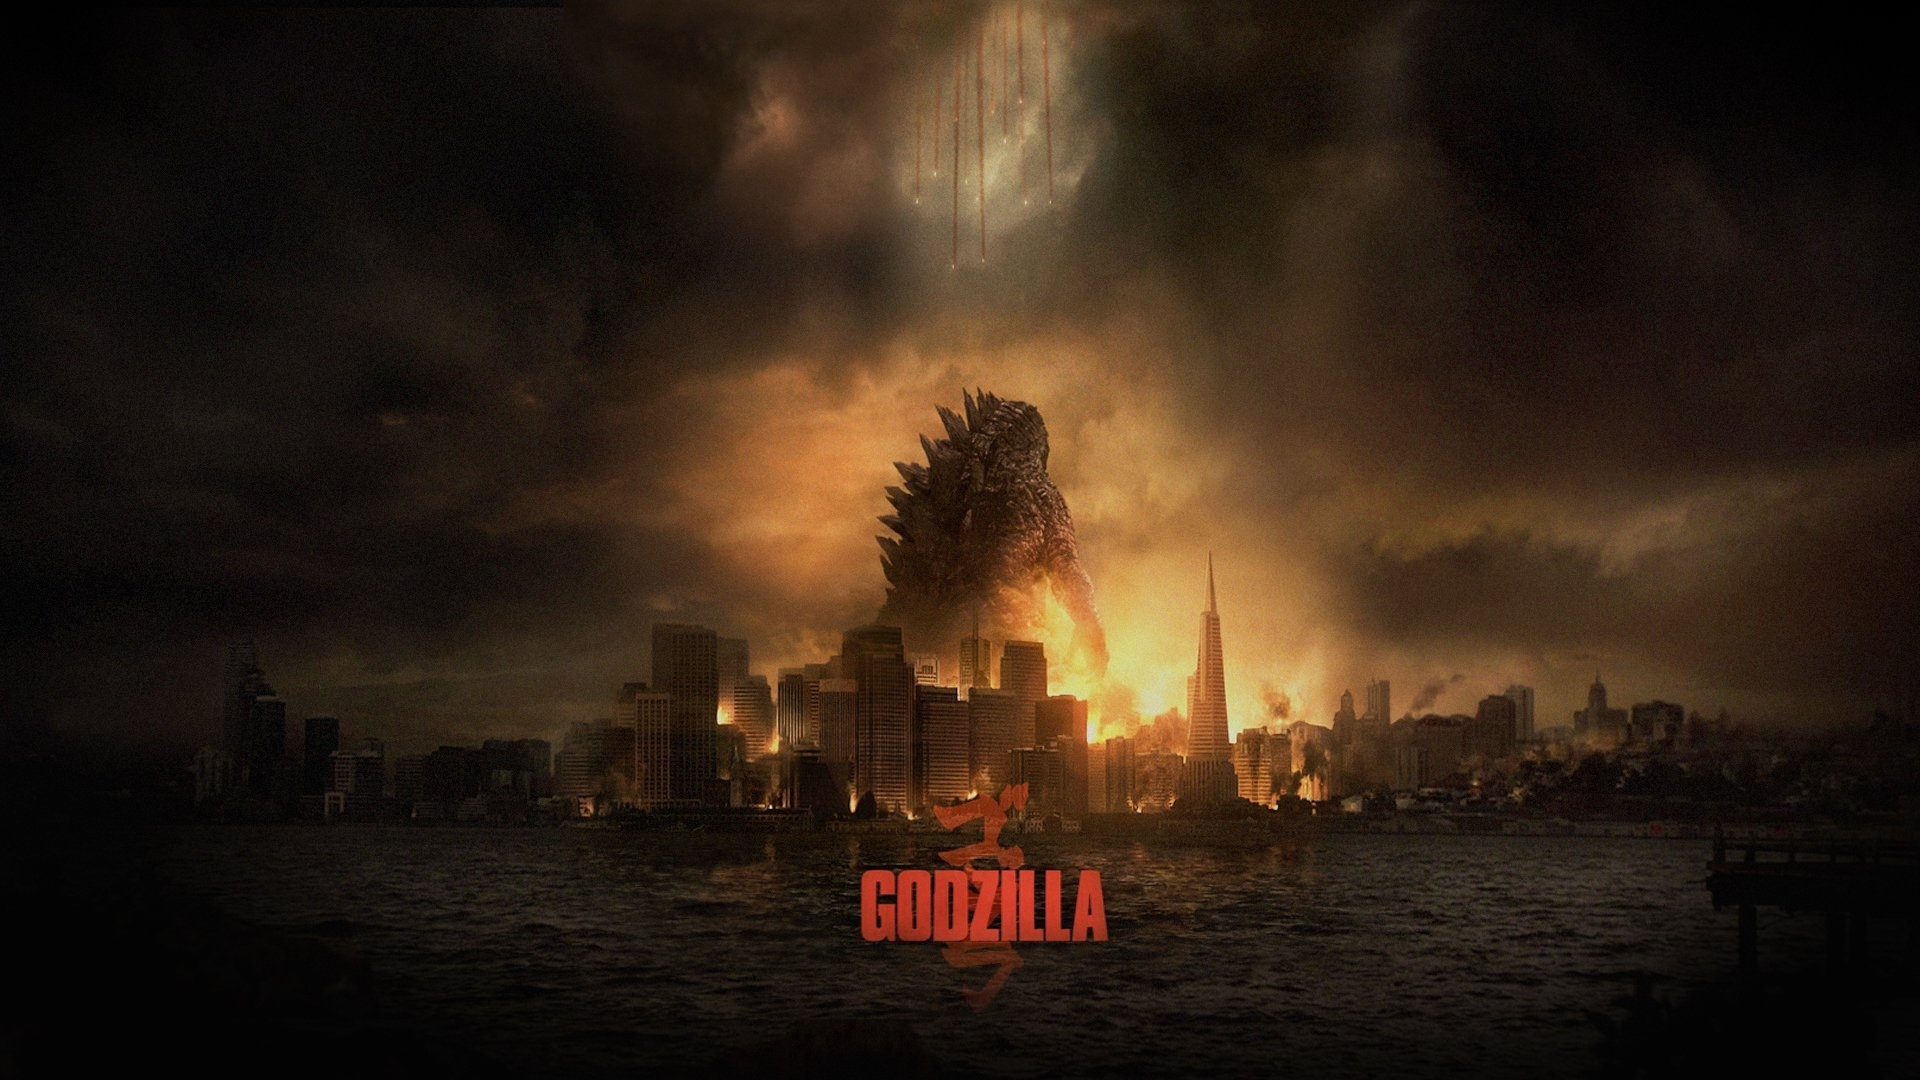 42 godzilla (2014) hd wallpapers | background images - wallpaper abyss